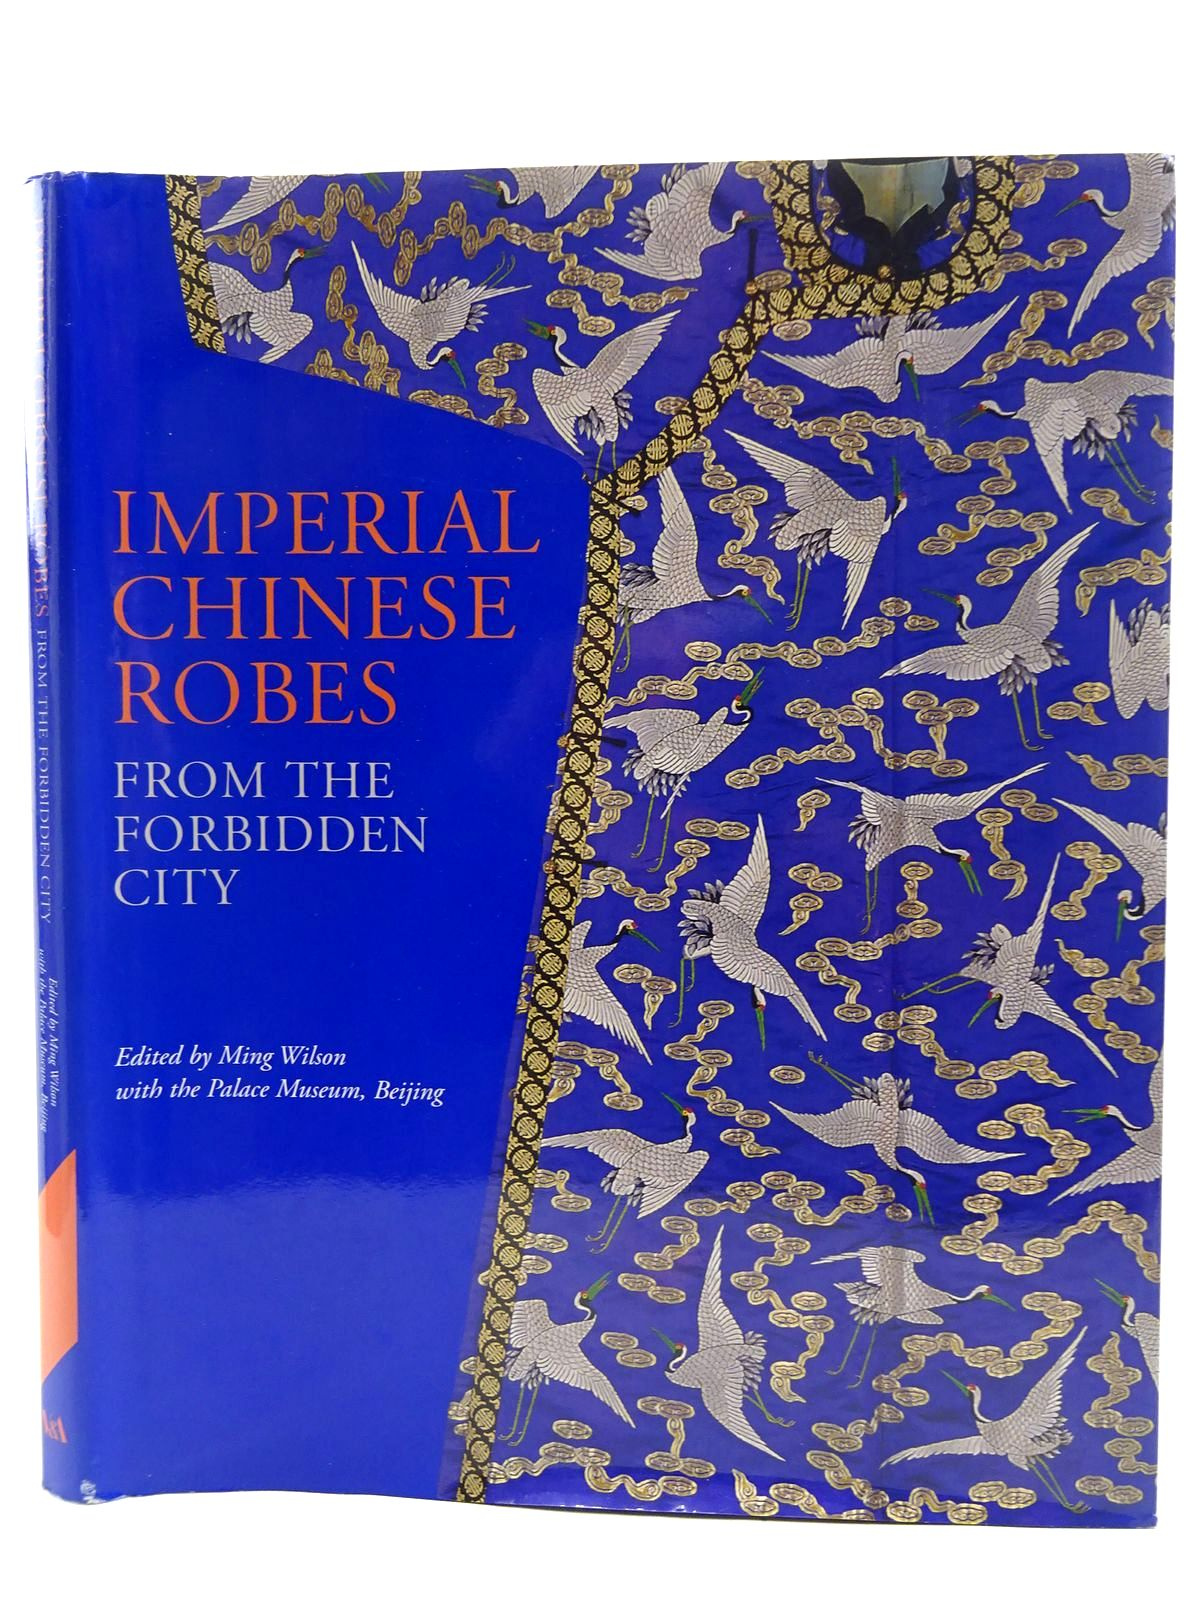 Photo of IMNPERIAL CHINESE ROBES FROM THE FORBIDDEN CITY